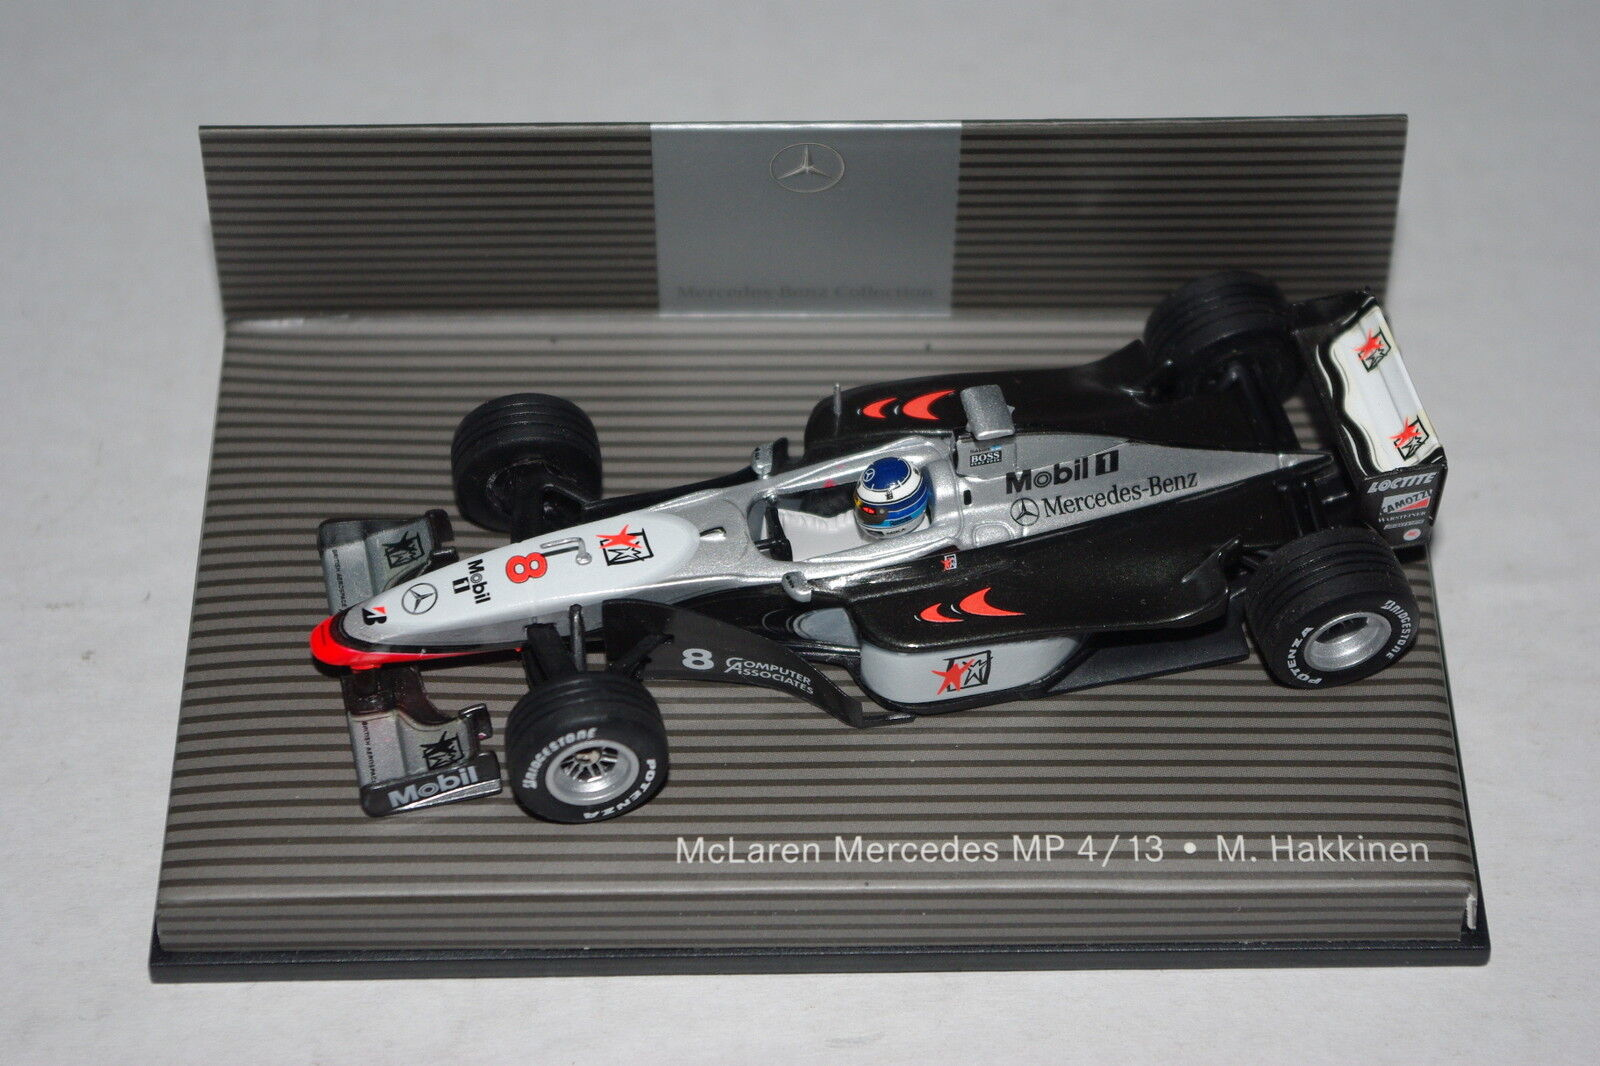 Minichamps F1 1/43 MCLAREN MERCEDES MP4/13 Mika Hakkinen-Dealer Edition